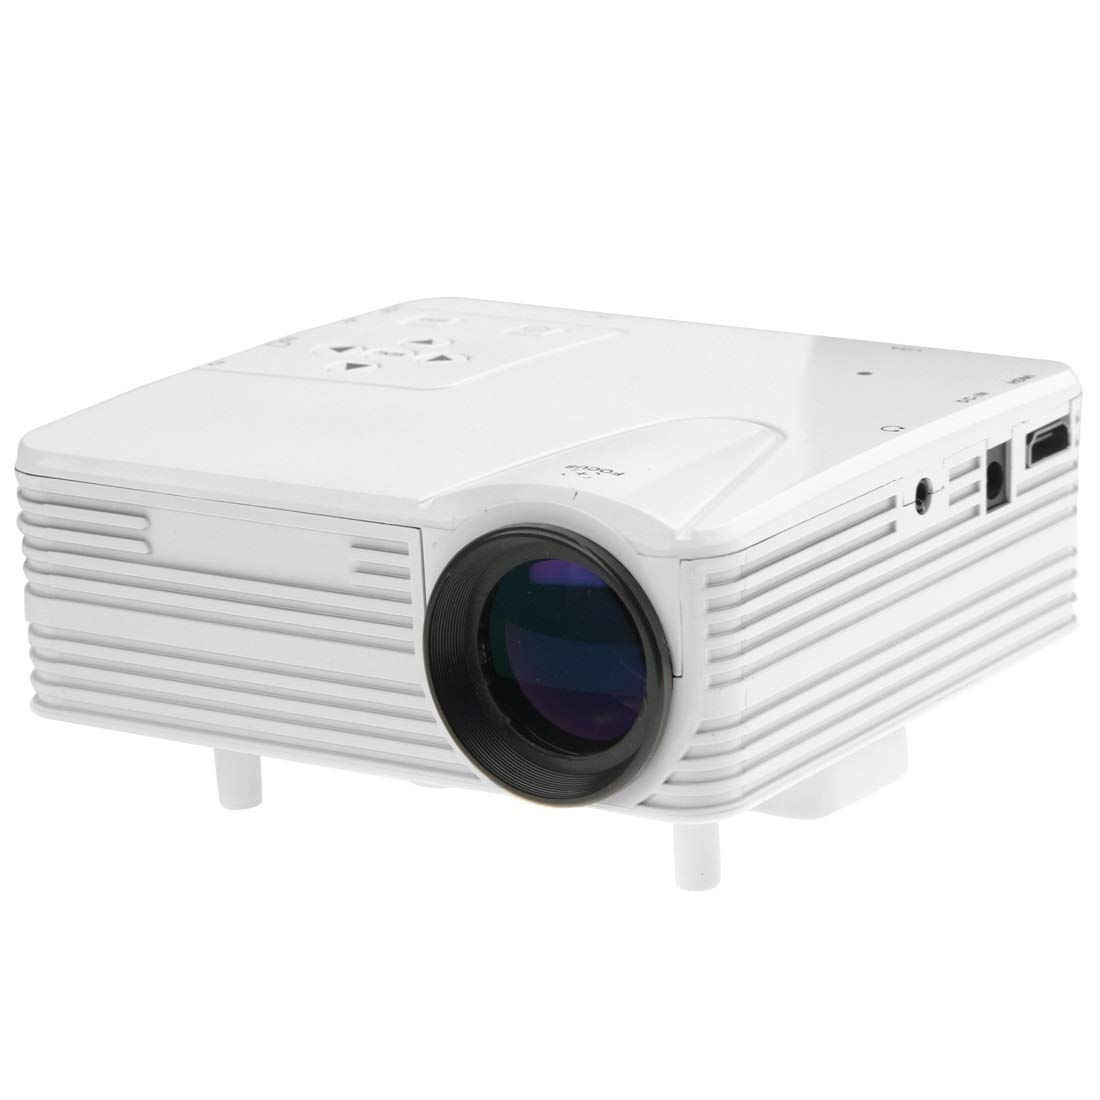 Instan Proyector LED 640x480 píxeles admite 1080P Completo ...